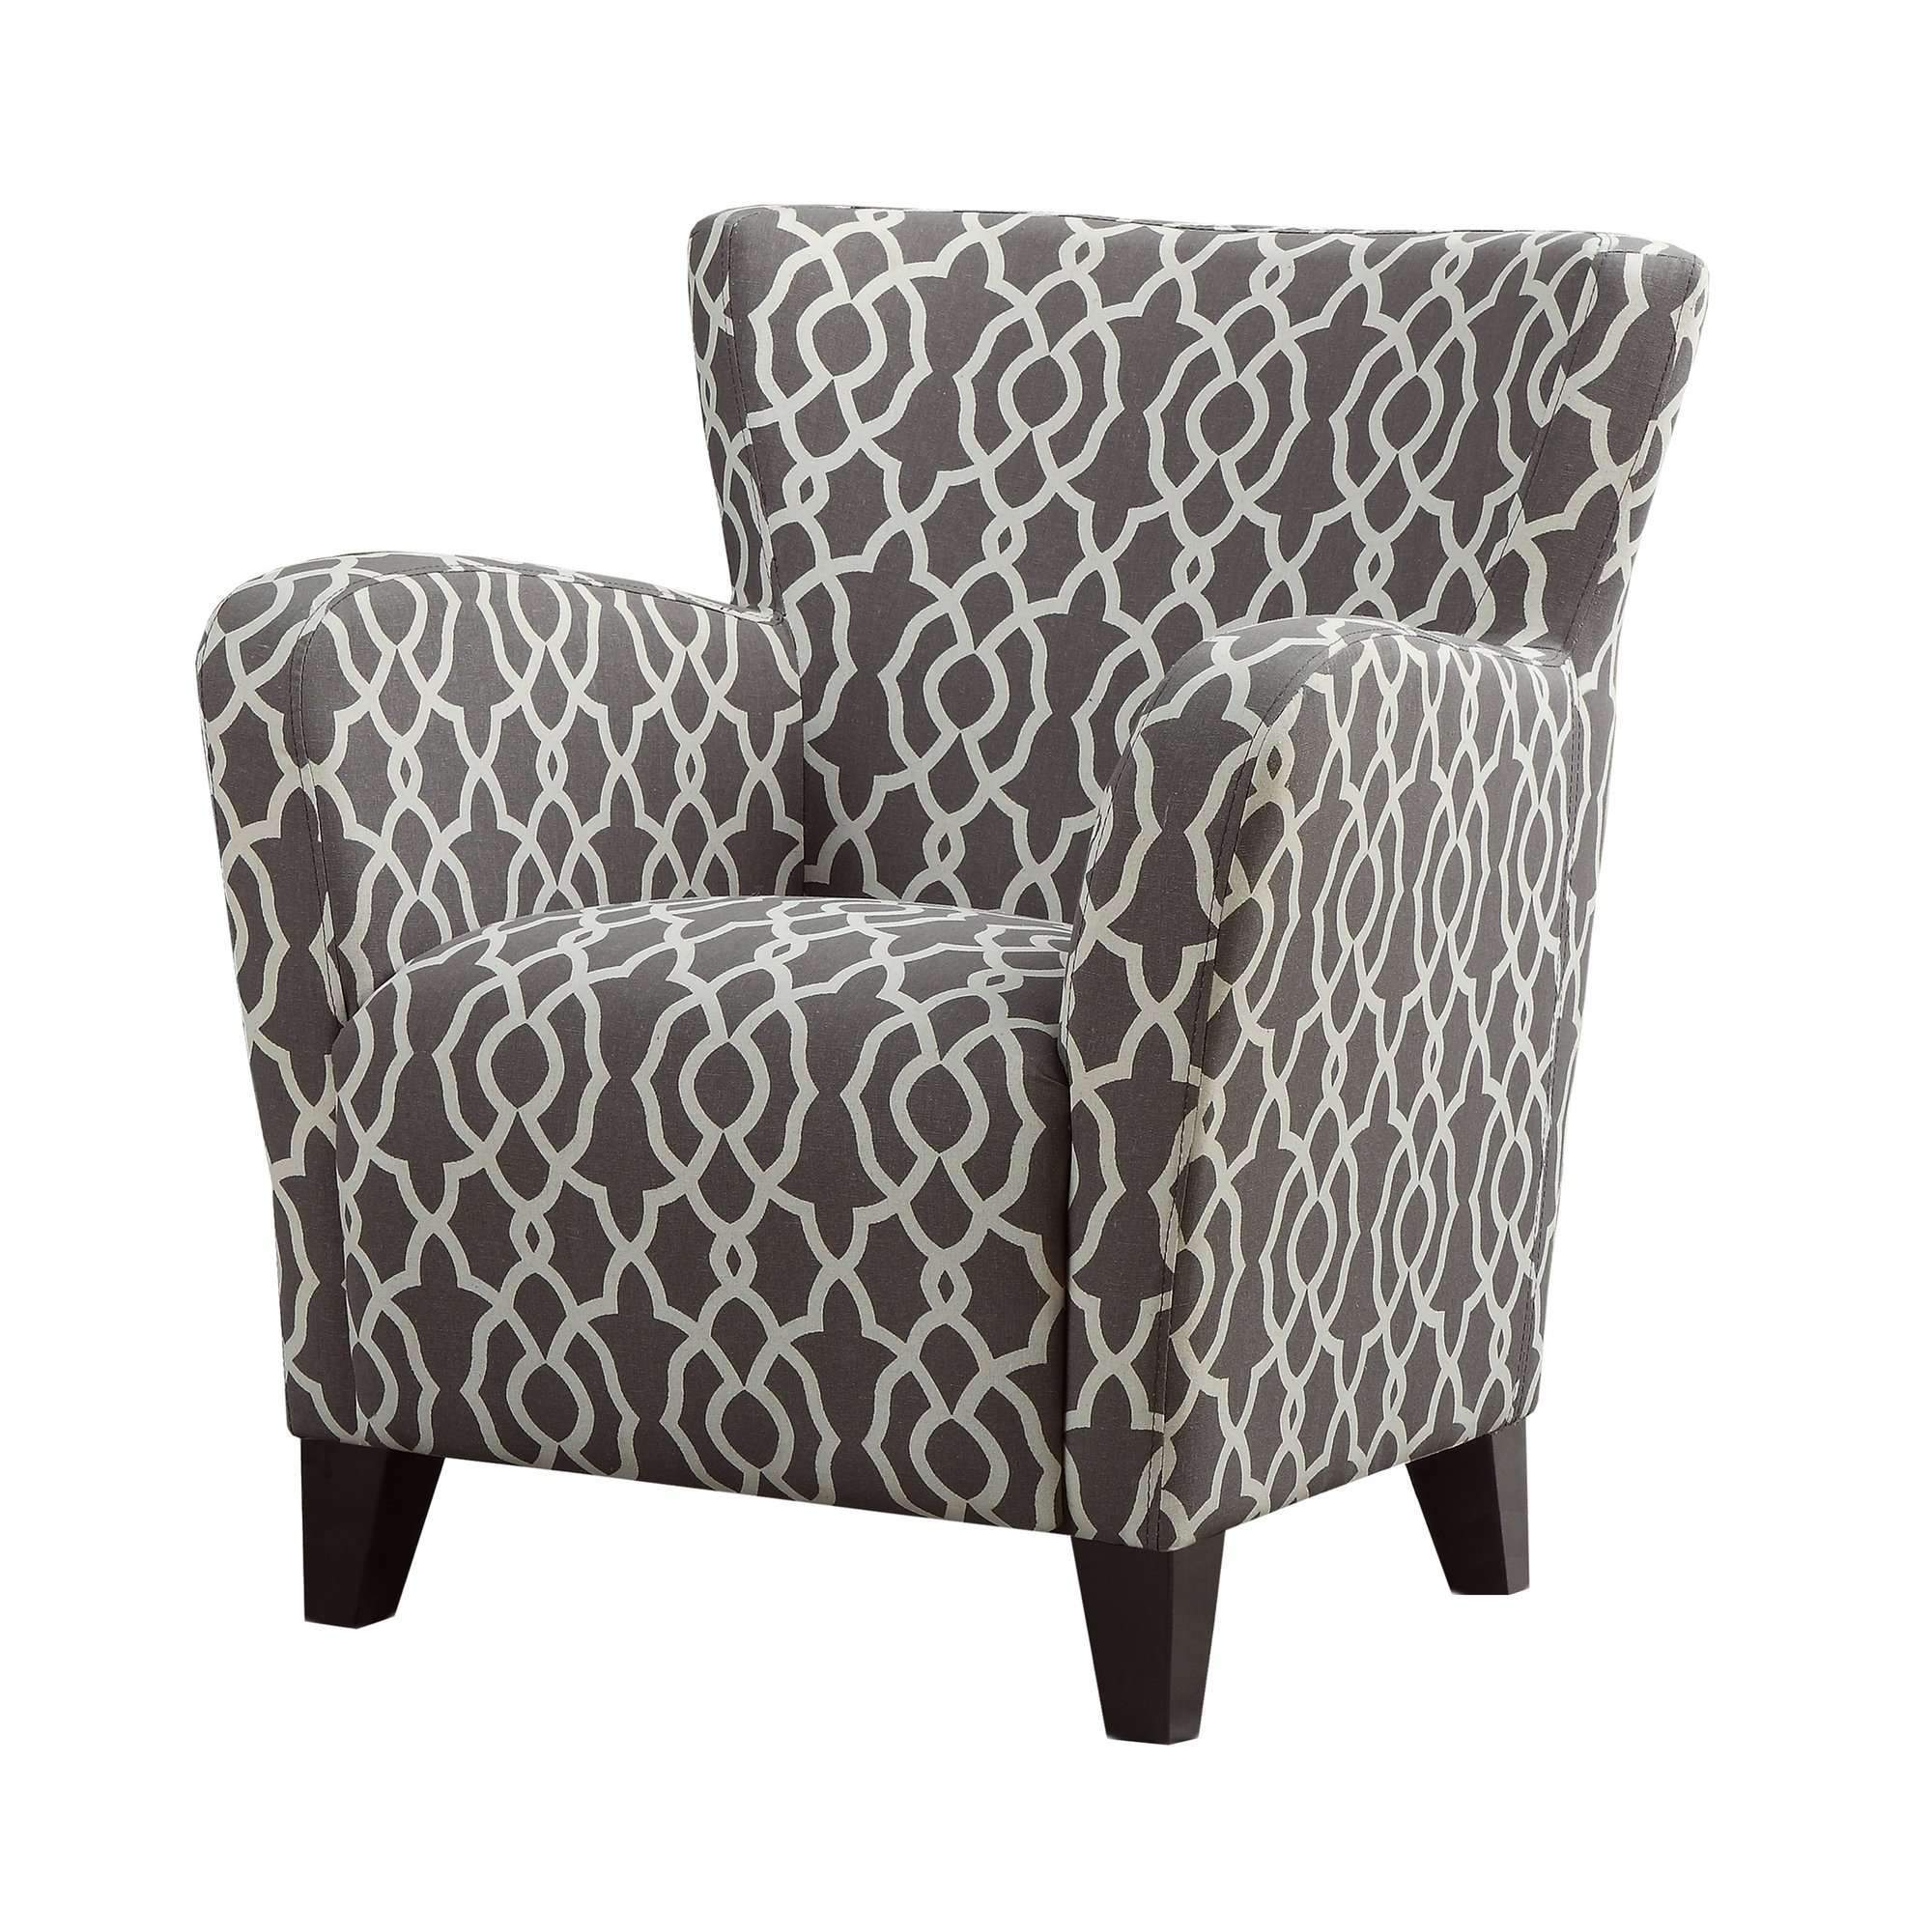 Accent Chair Brown Bell Pattern Fabric Sectional Sofa With